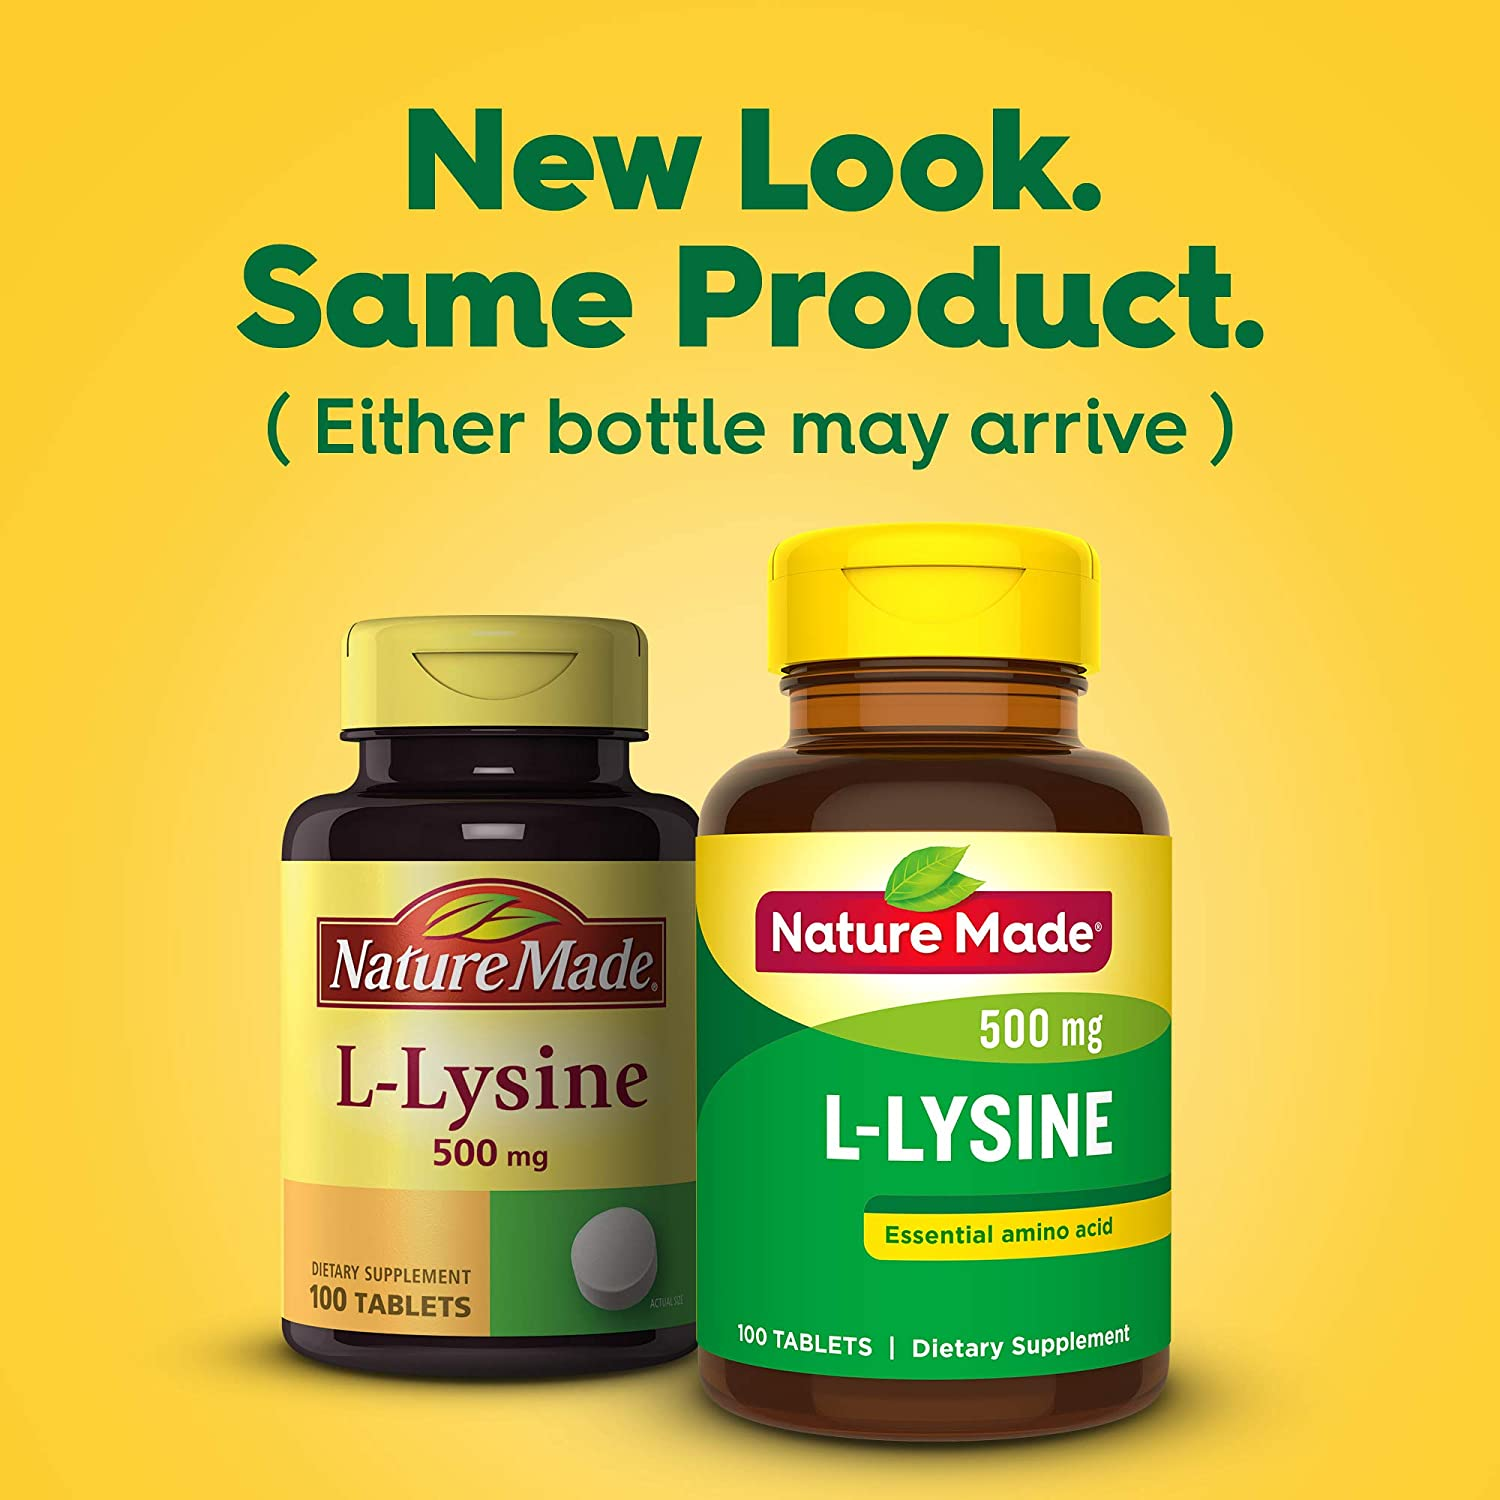 Nature Made L-Lysine Supplement Tablets, 500 mg, 100-Count Bottles Pack of 3